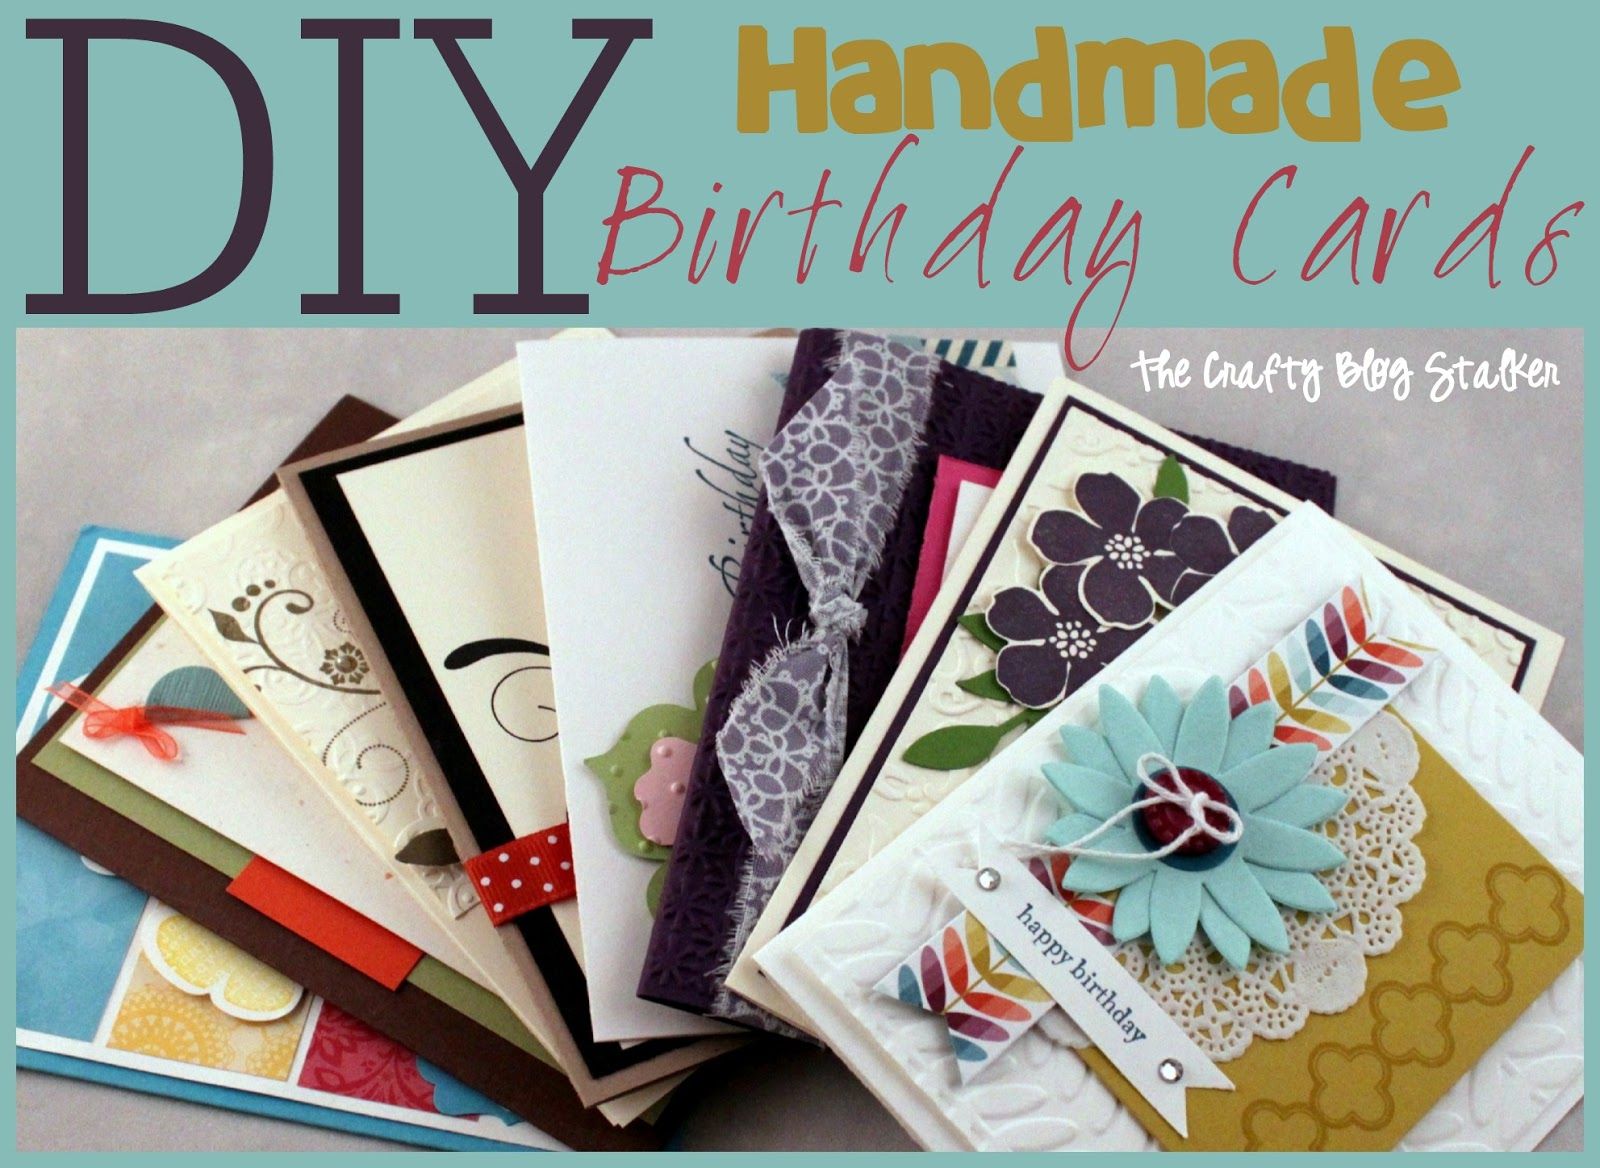 Card Ideas Birthday Handmade Birthday Card Ideas The Crafty Blog Stalker